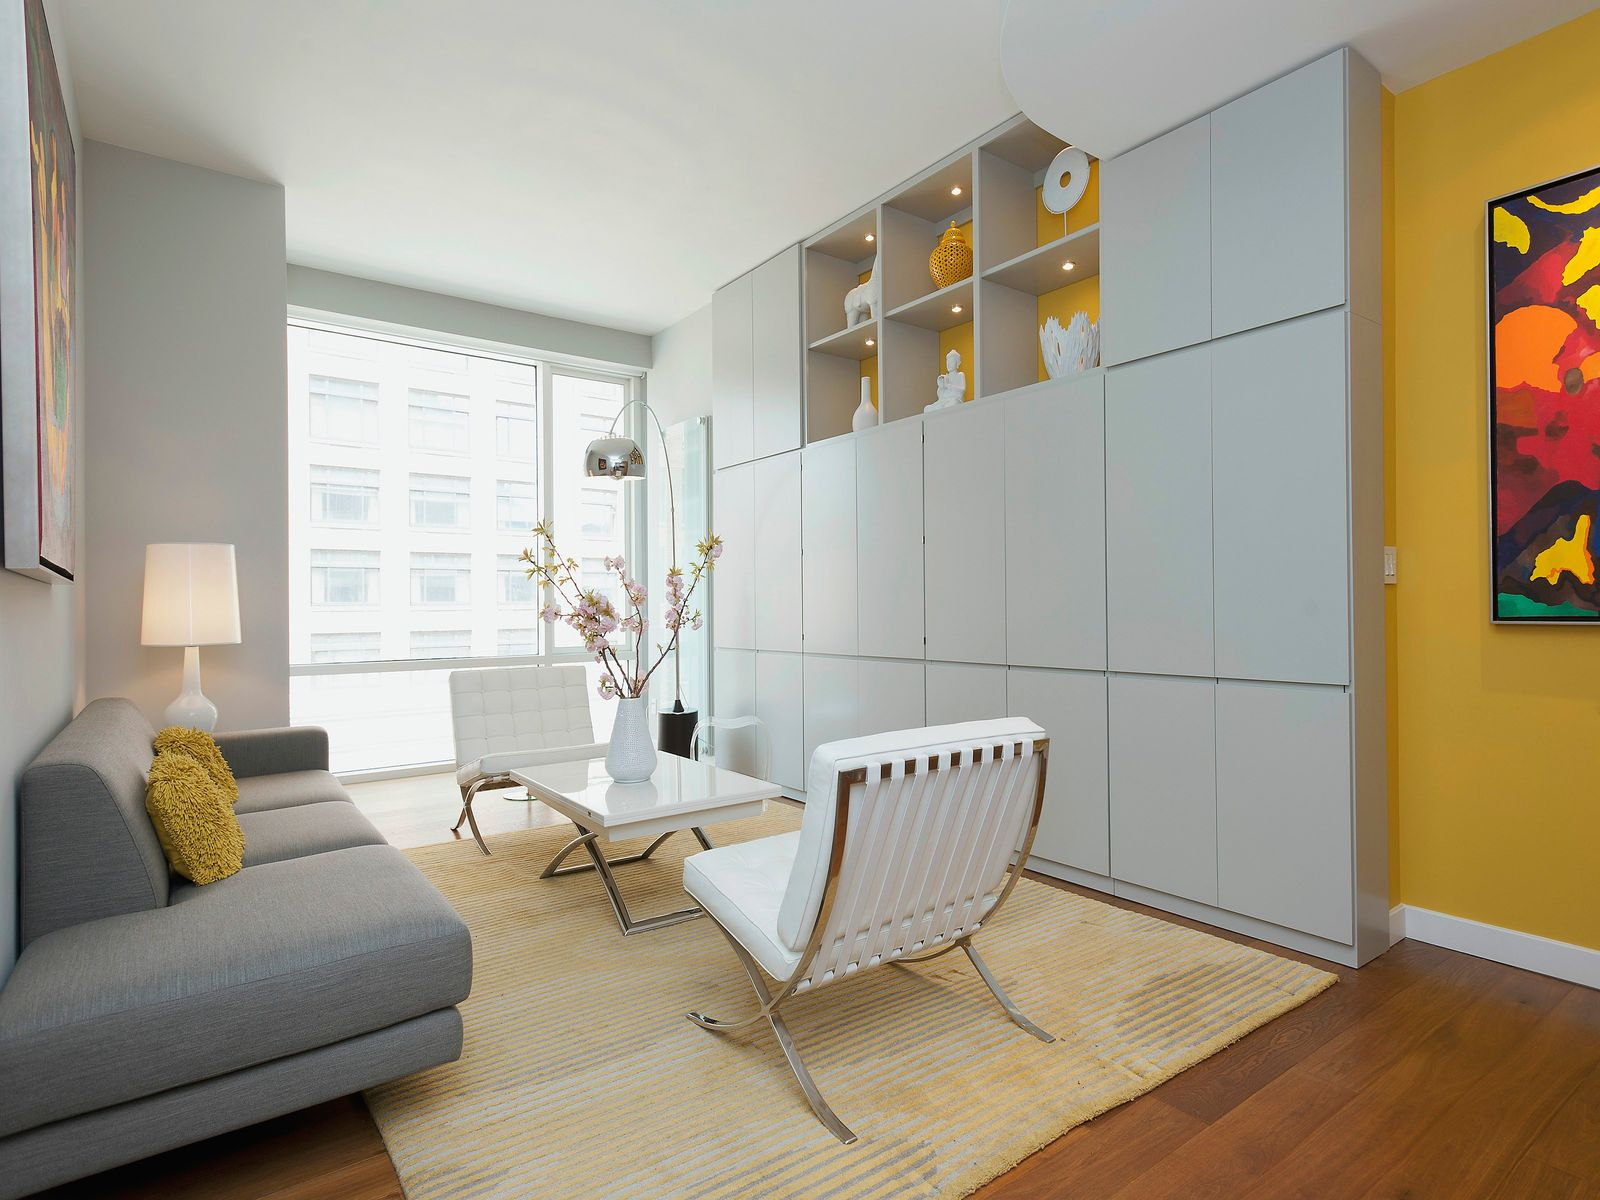 Lofty 2 bed/2 bath at Soho Mews, New York NY Condominium - New York City Real Estate